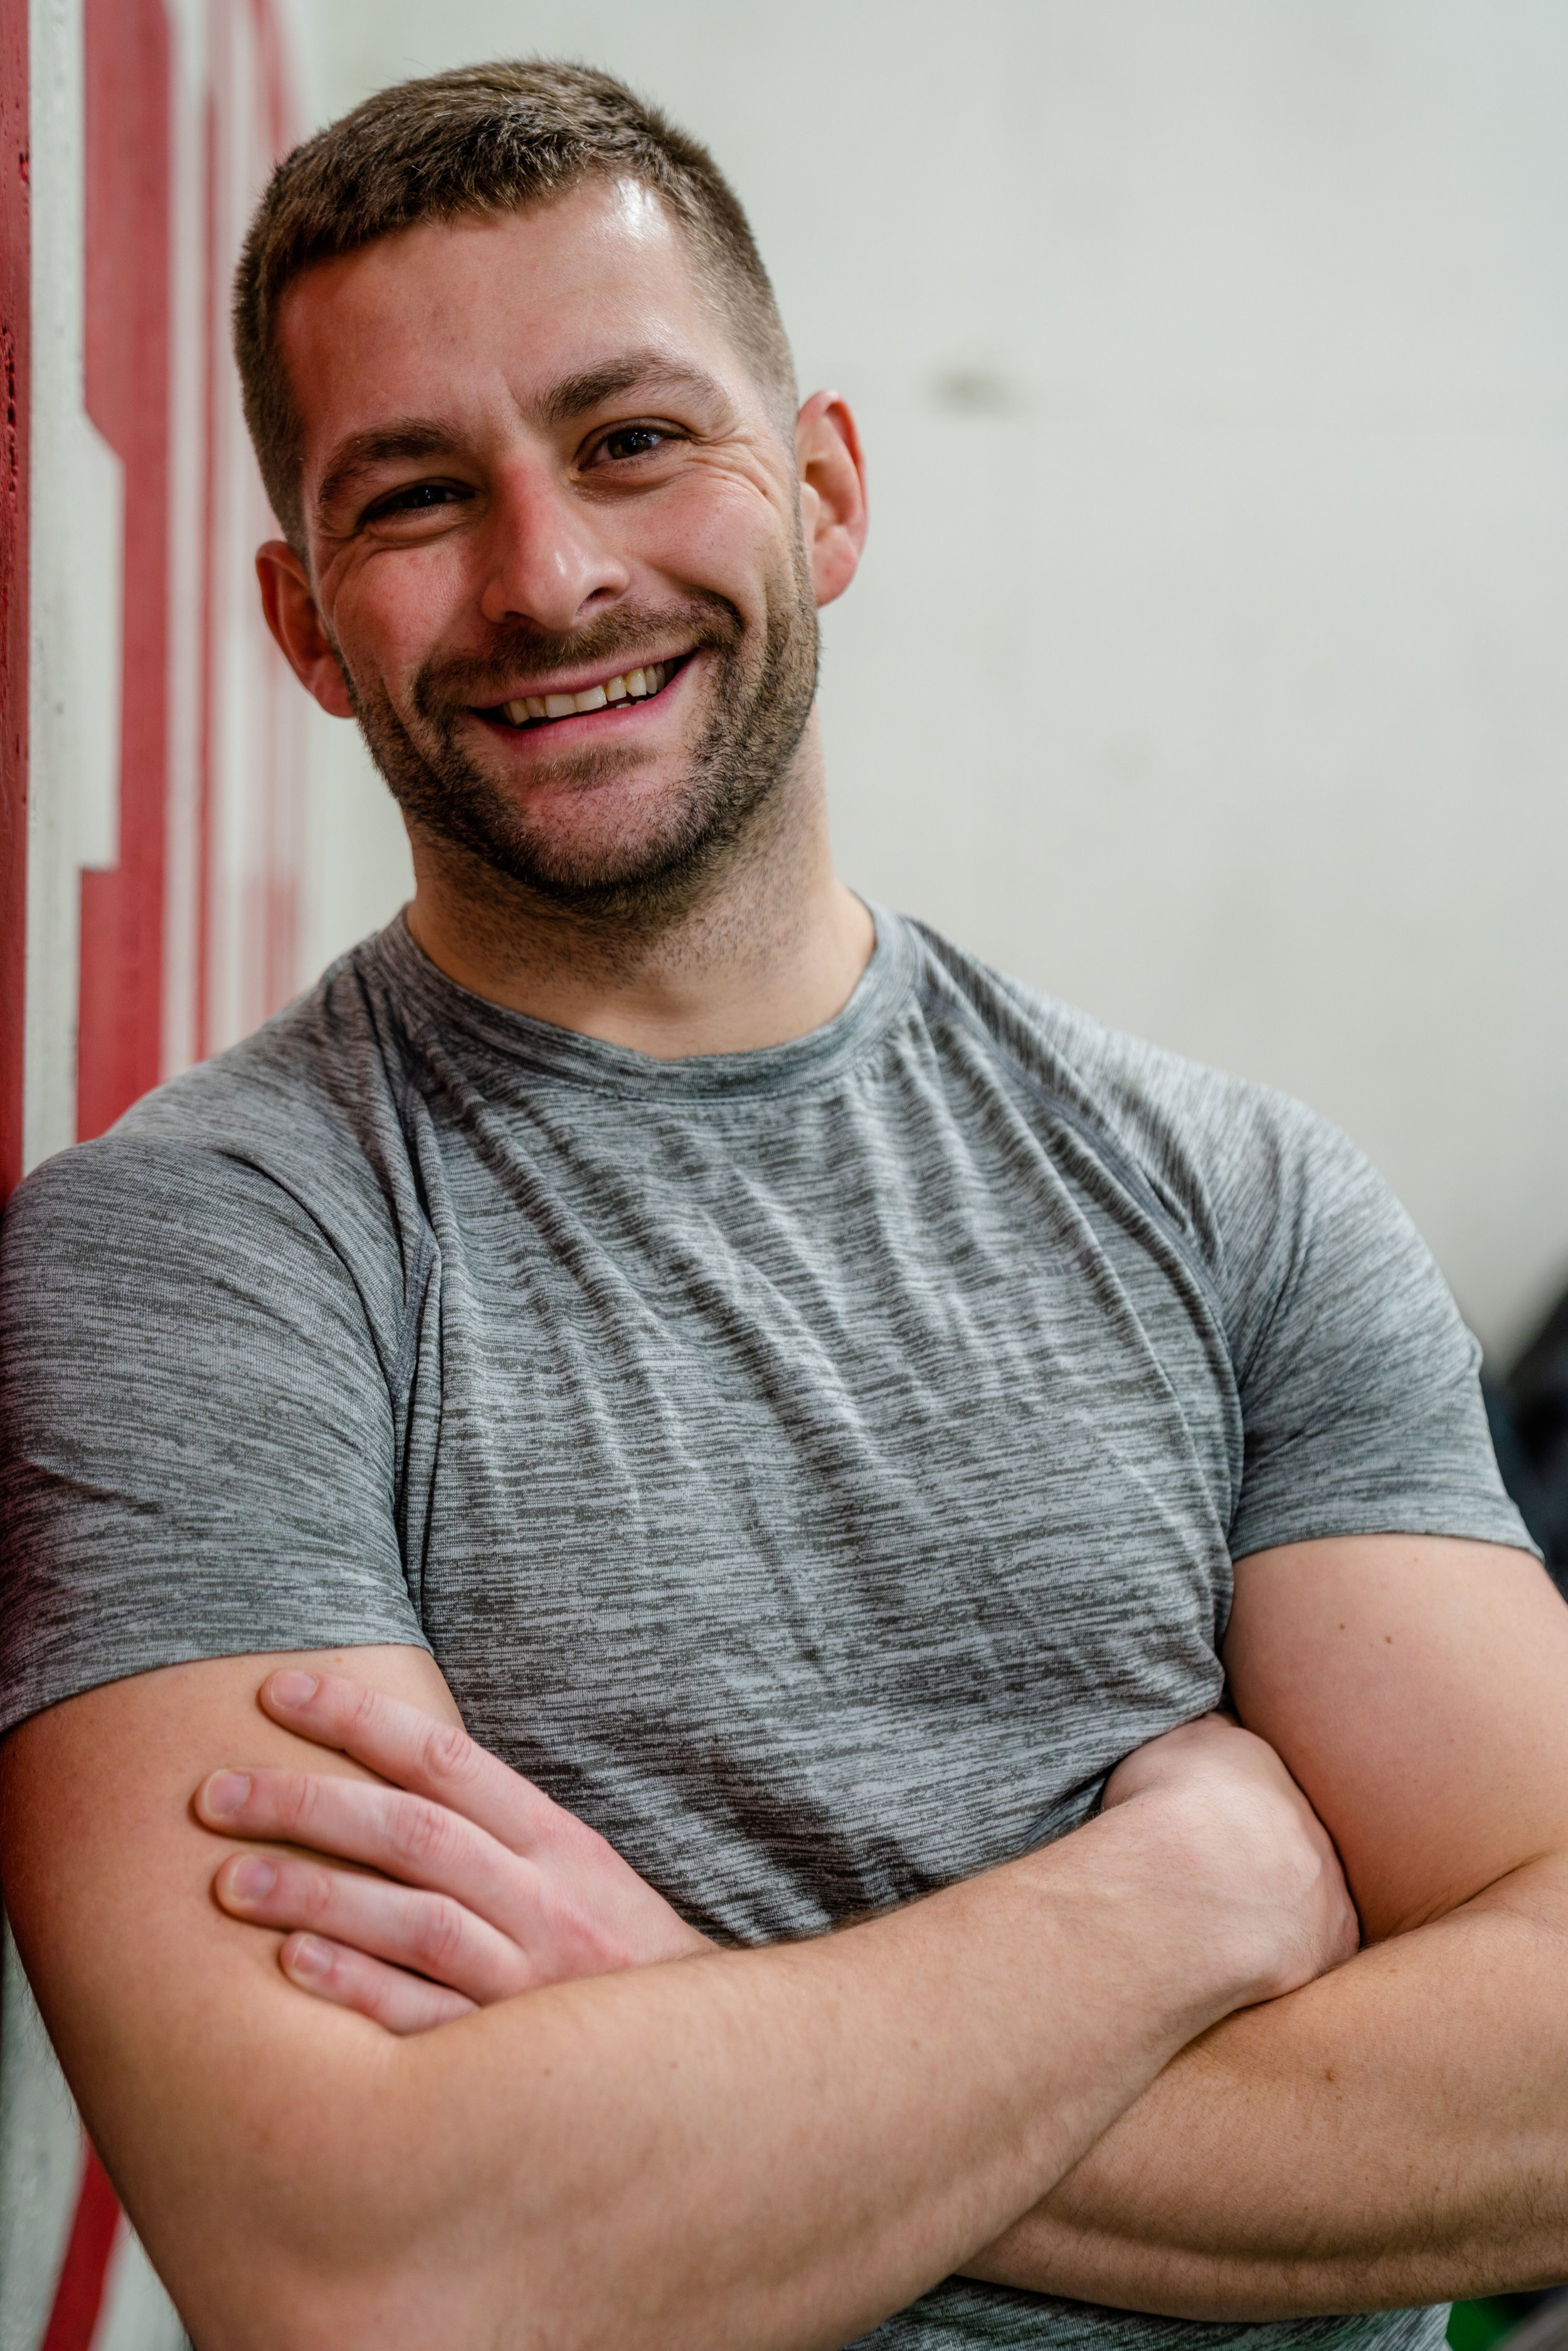 Nick - Coach, CrossFiti've spent much of my life playing and competing in various sports, but coaching CrossFit has provided a new home for those interests. as a coach and athlete, i take pride in watching our community fortify our physical and mental fitness together.